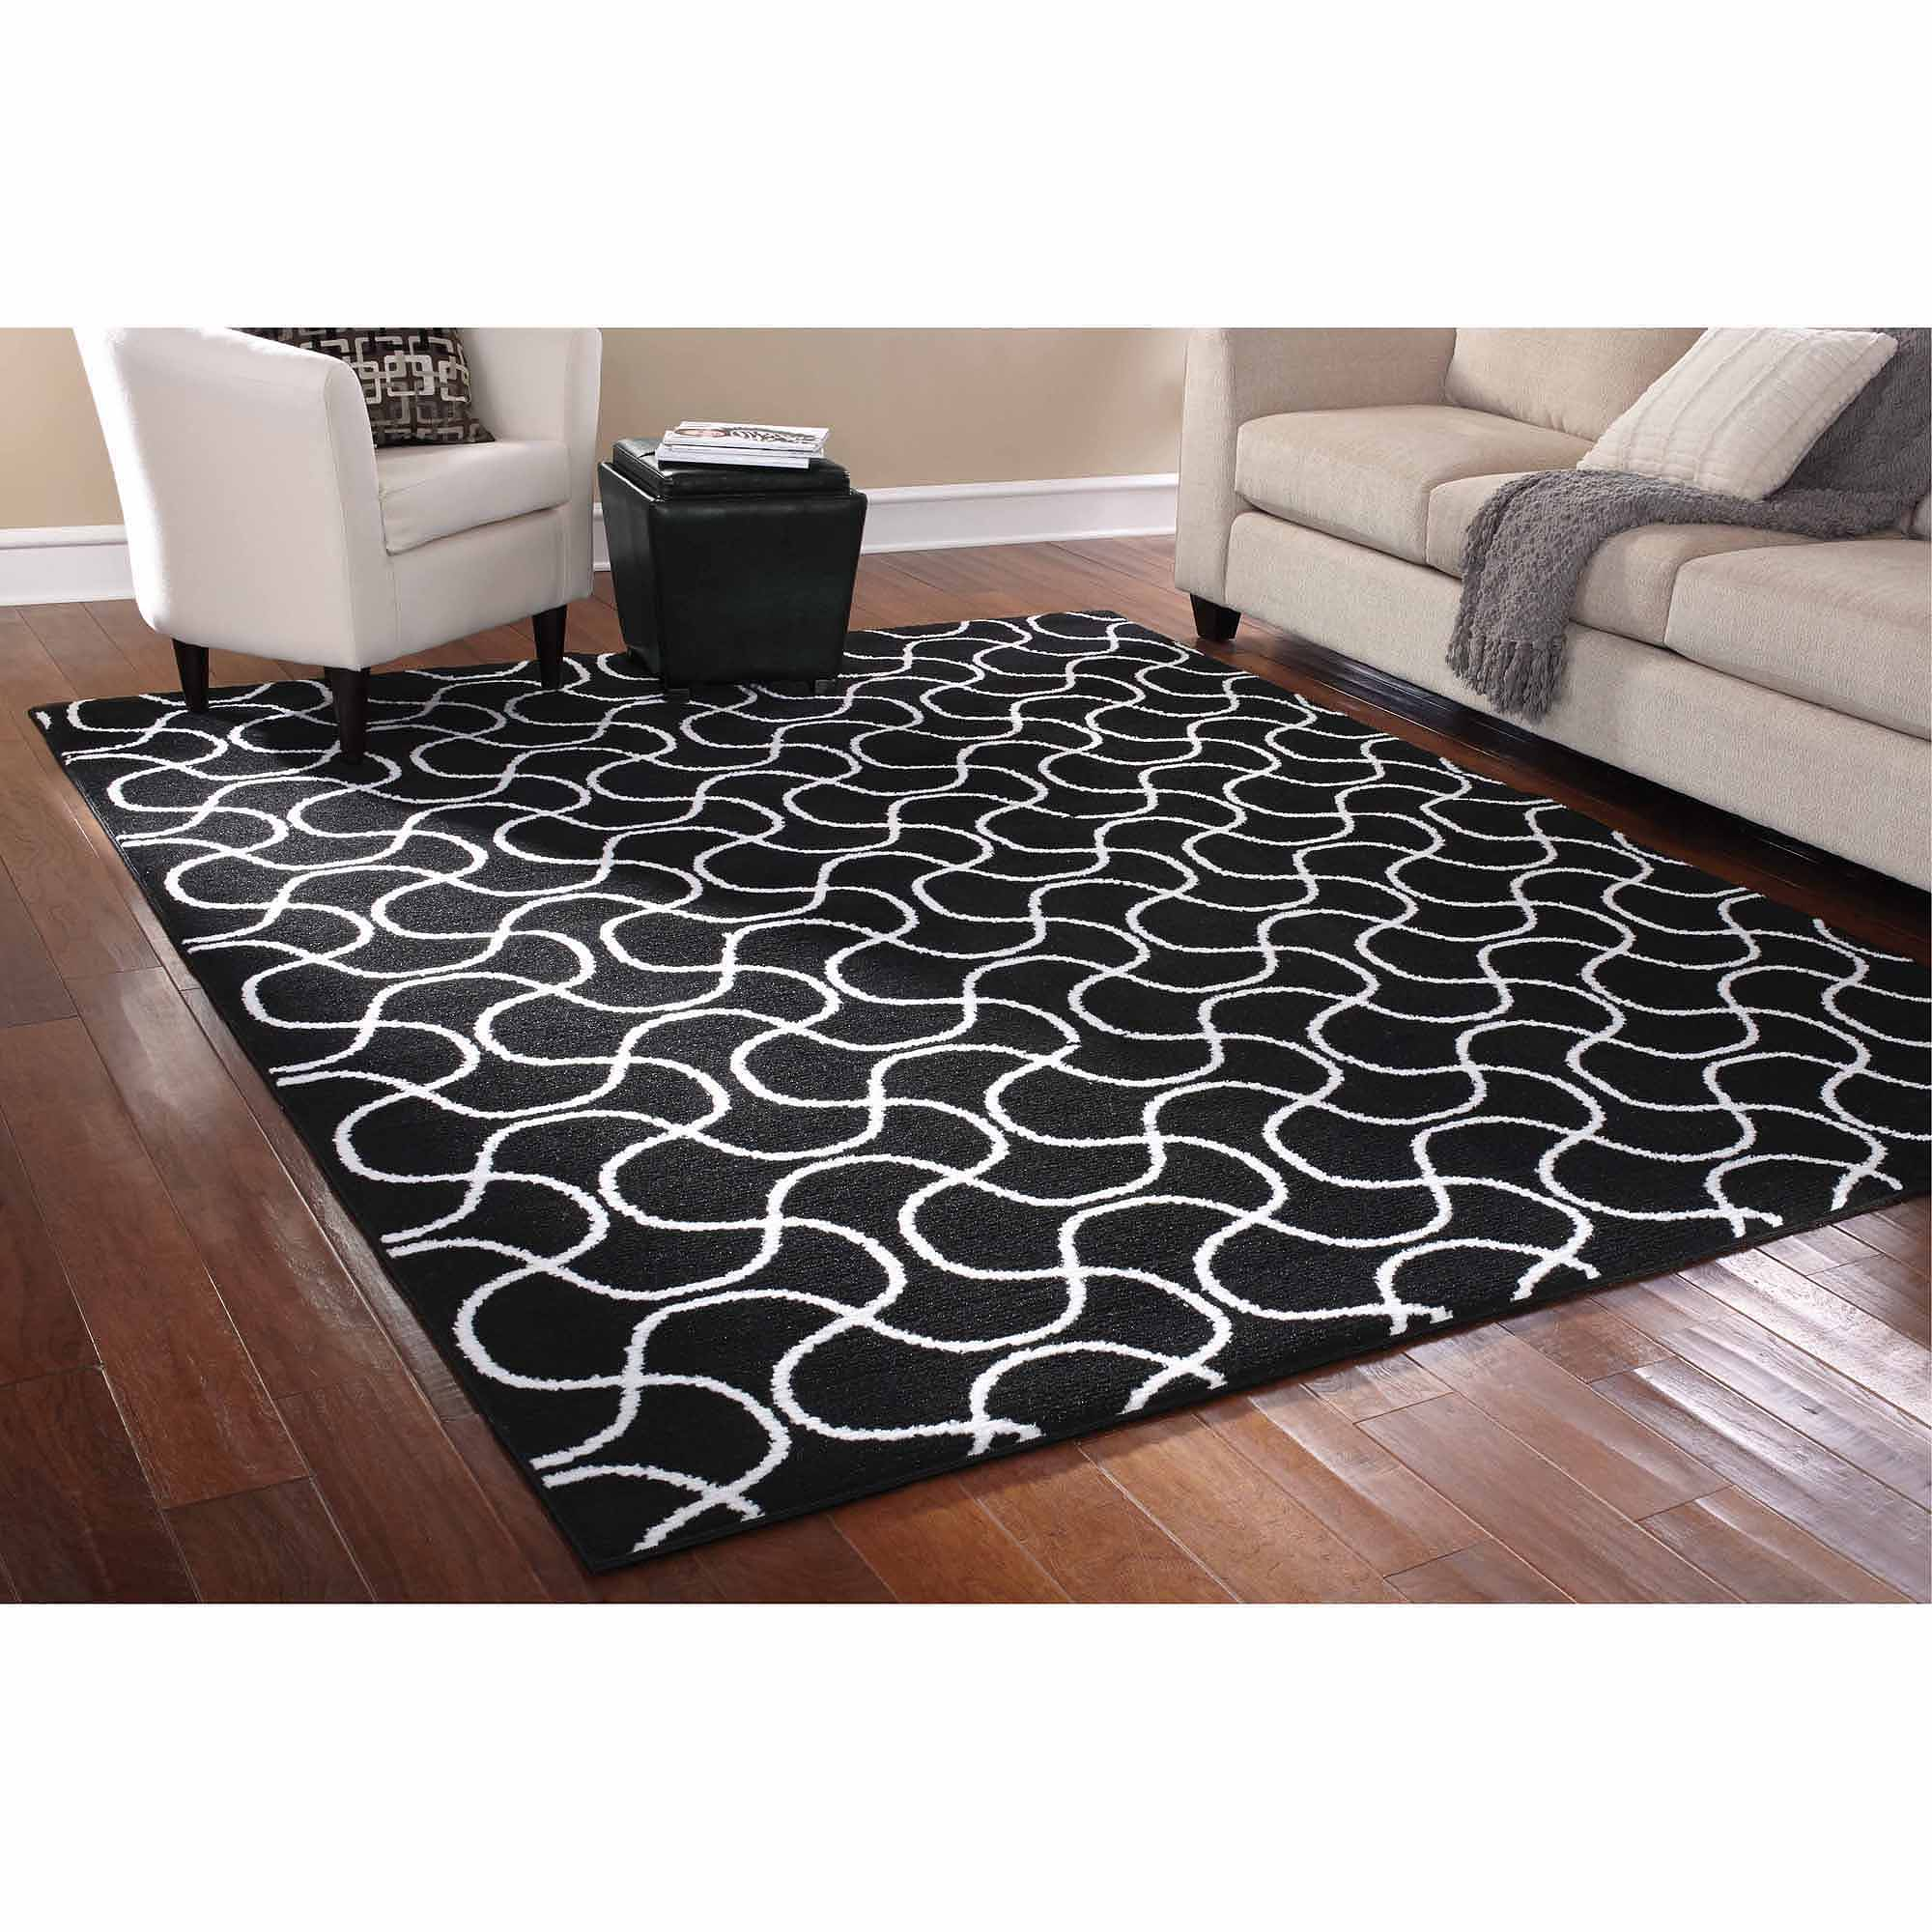 Mainstays Rug in a Bag Drizzle Area Rug, Black/White